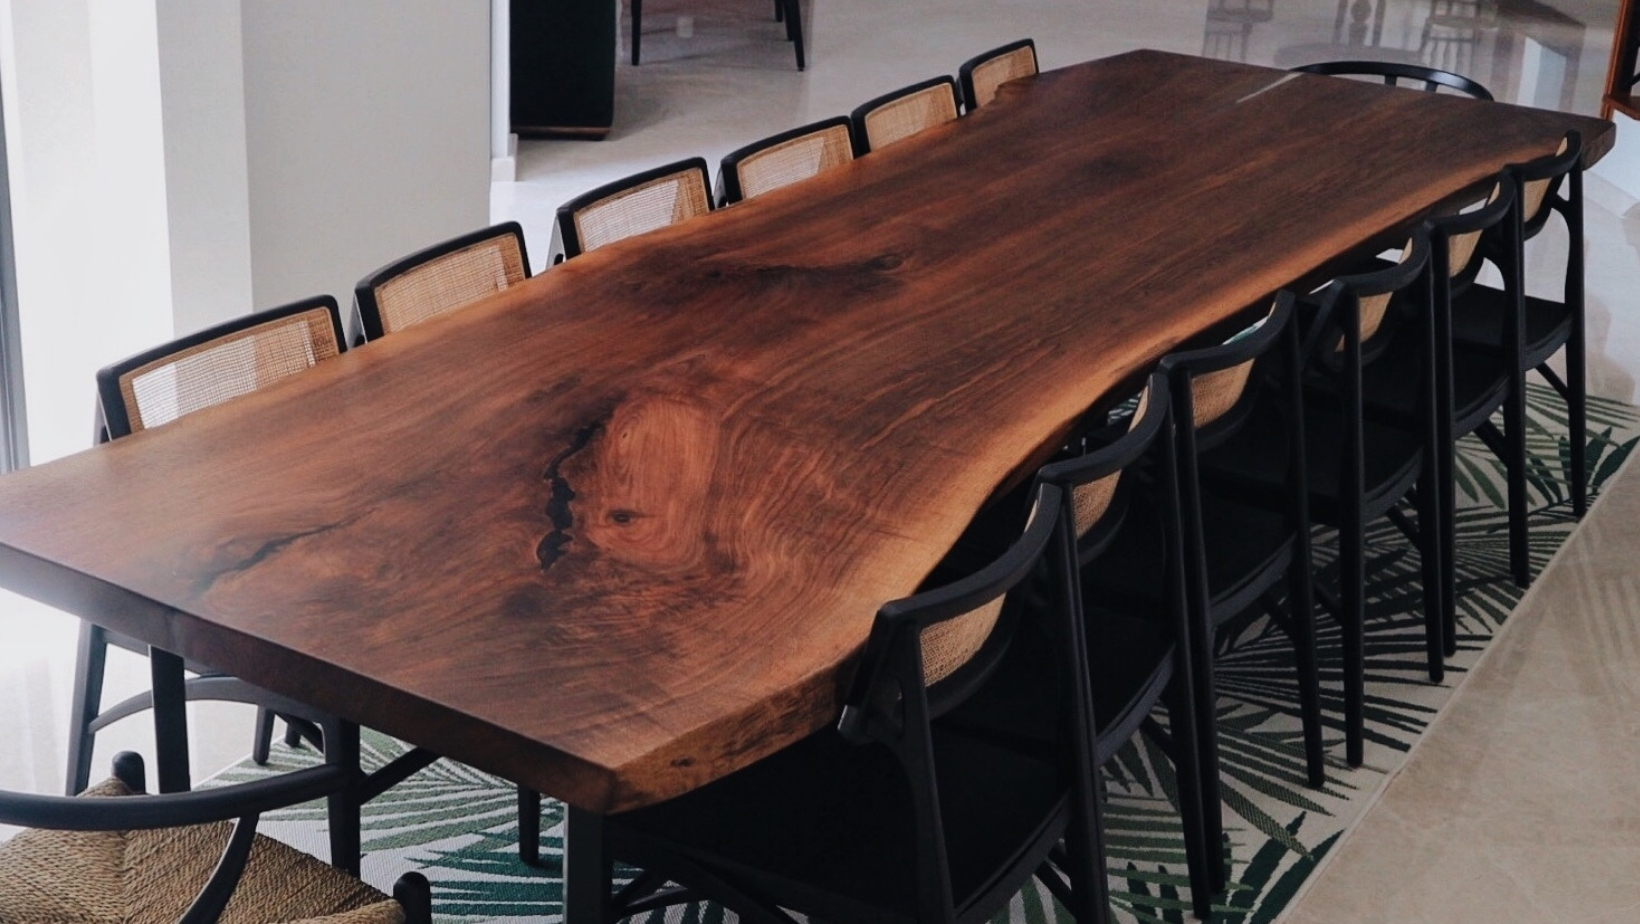 The Ultimate Guide to Wood Slabs - Part I